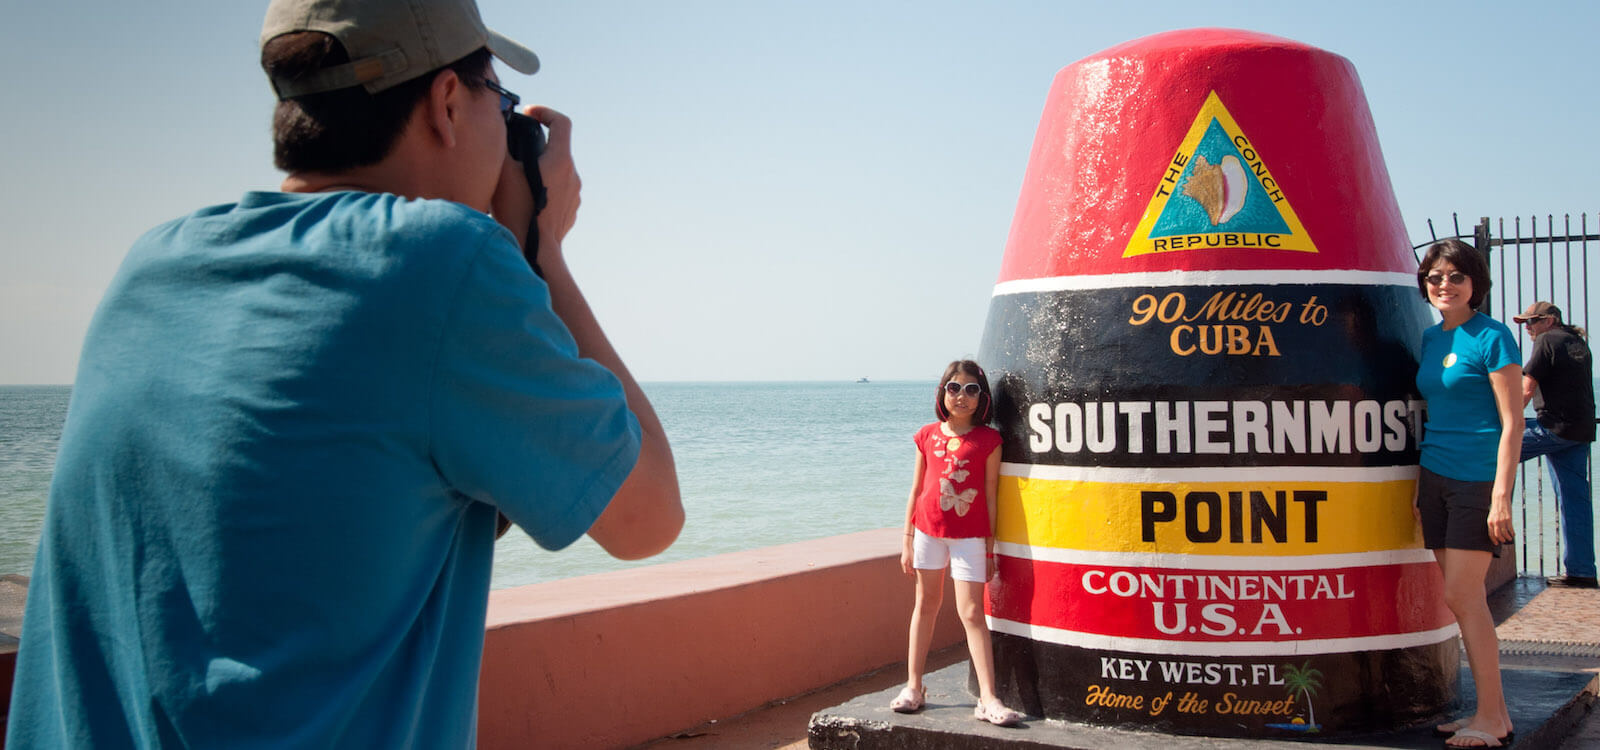 MustDo.com | Visit the southernmost point in the U.S. in Key West Florida.